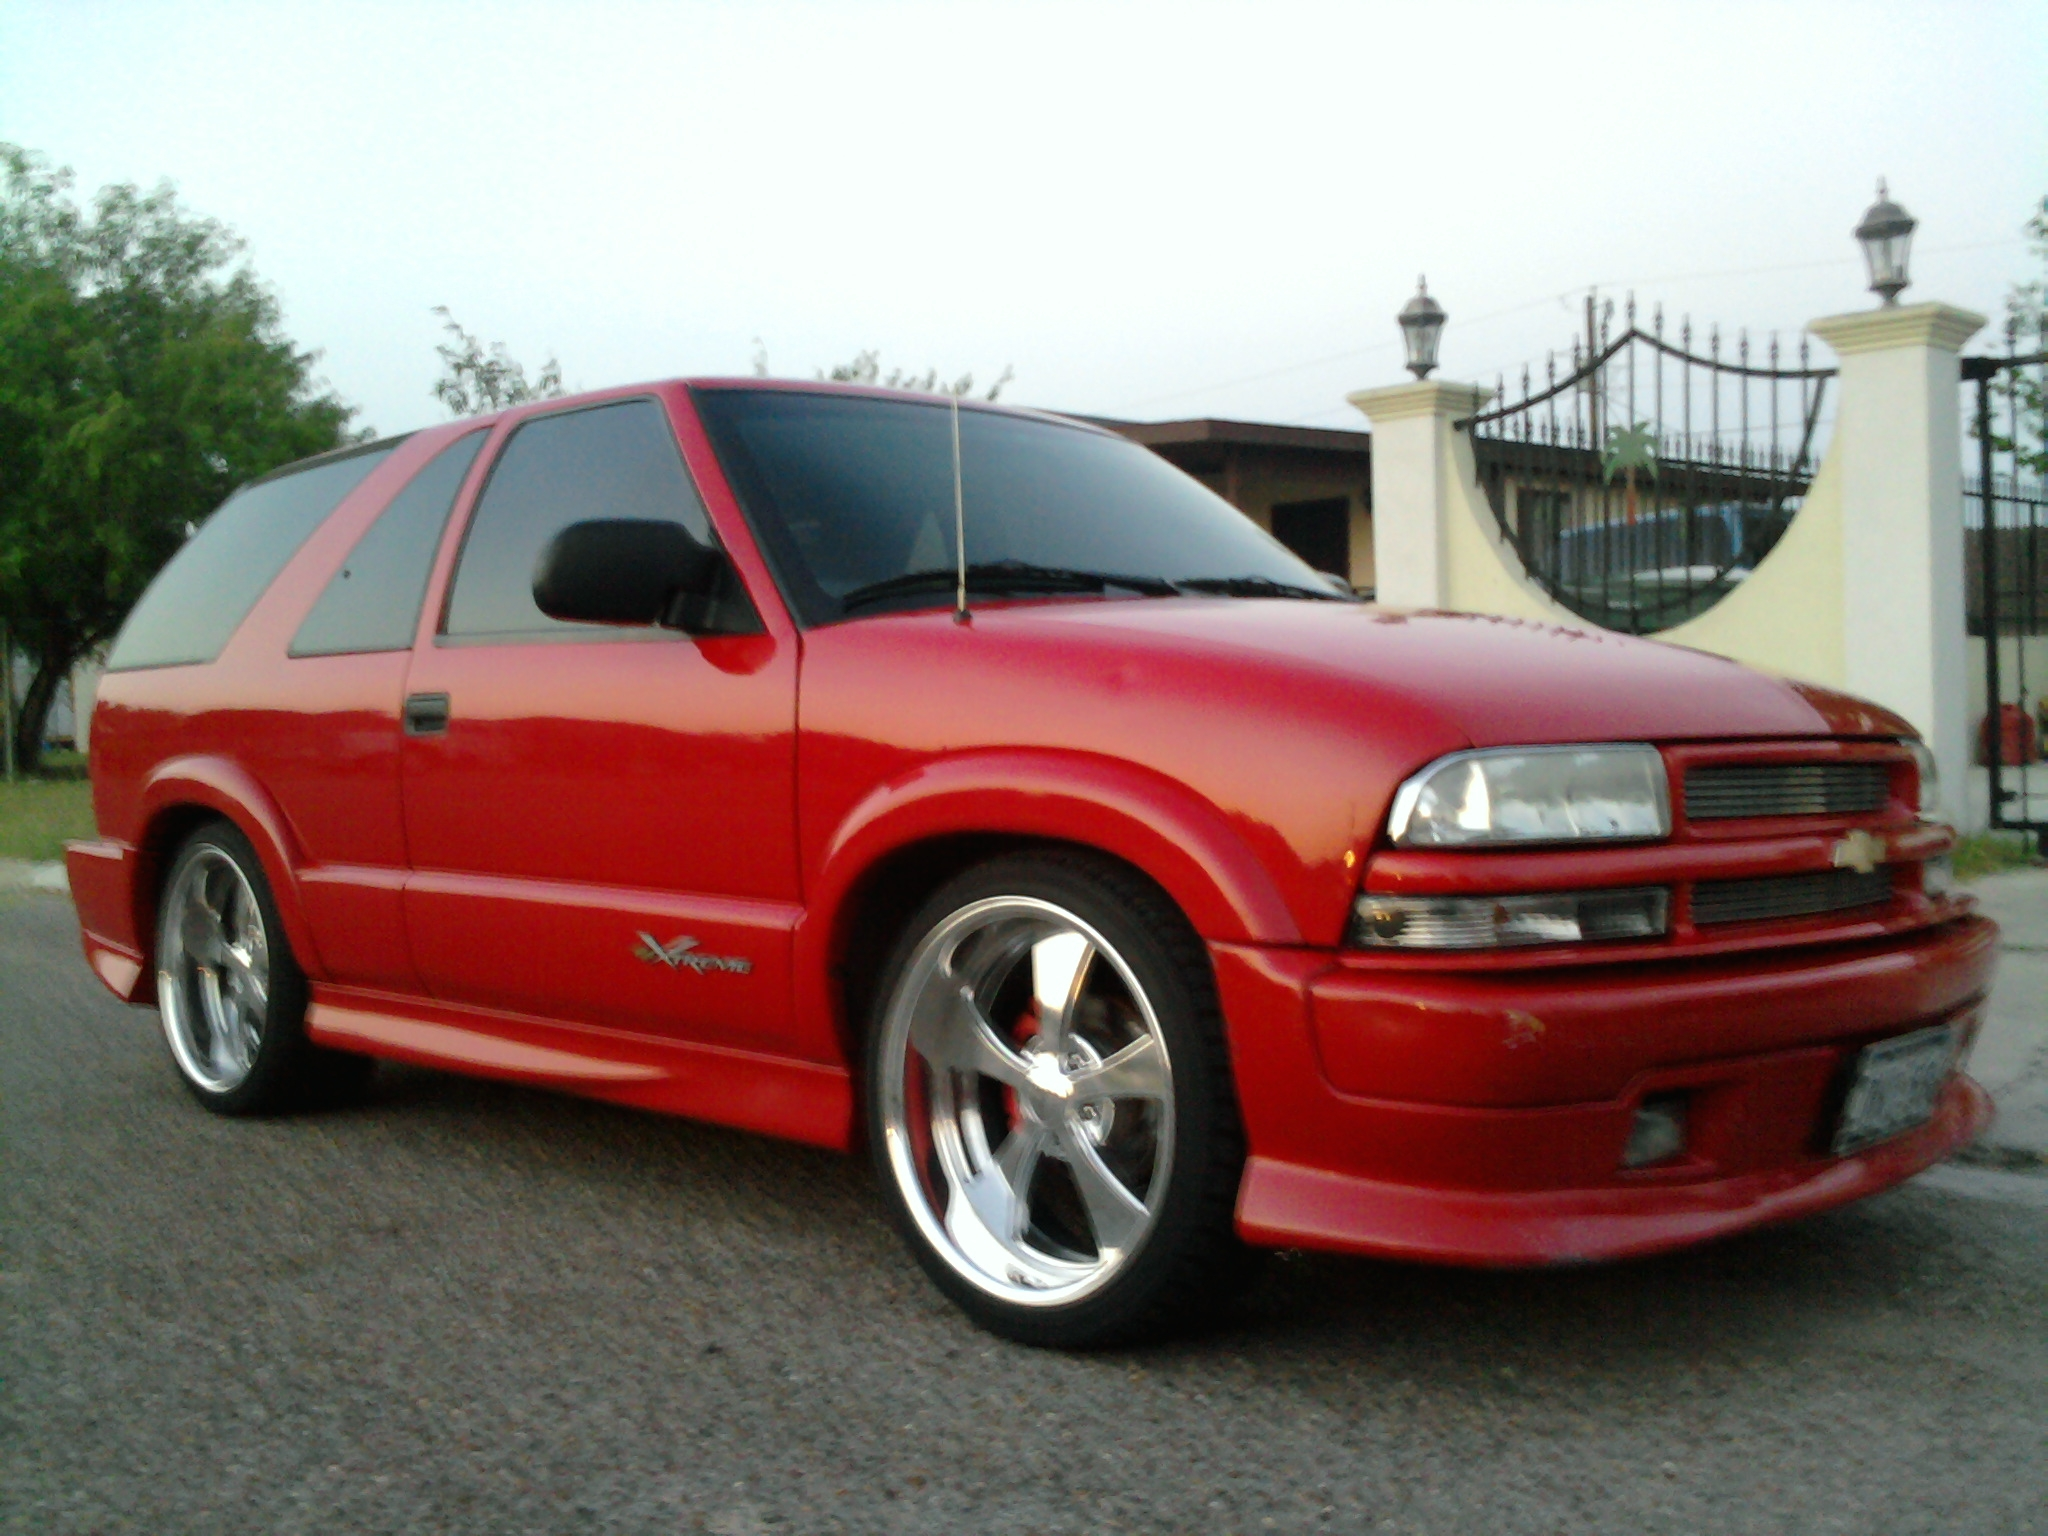 Vortectoyz 2001 Chevrolet Blazersport Utility 2d Specs Photos Modification Info At Cardomain